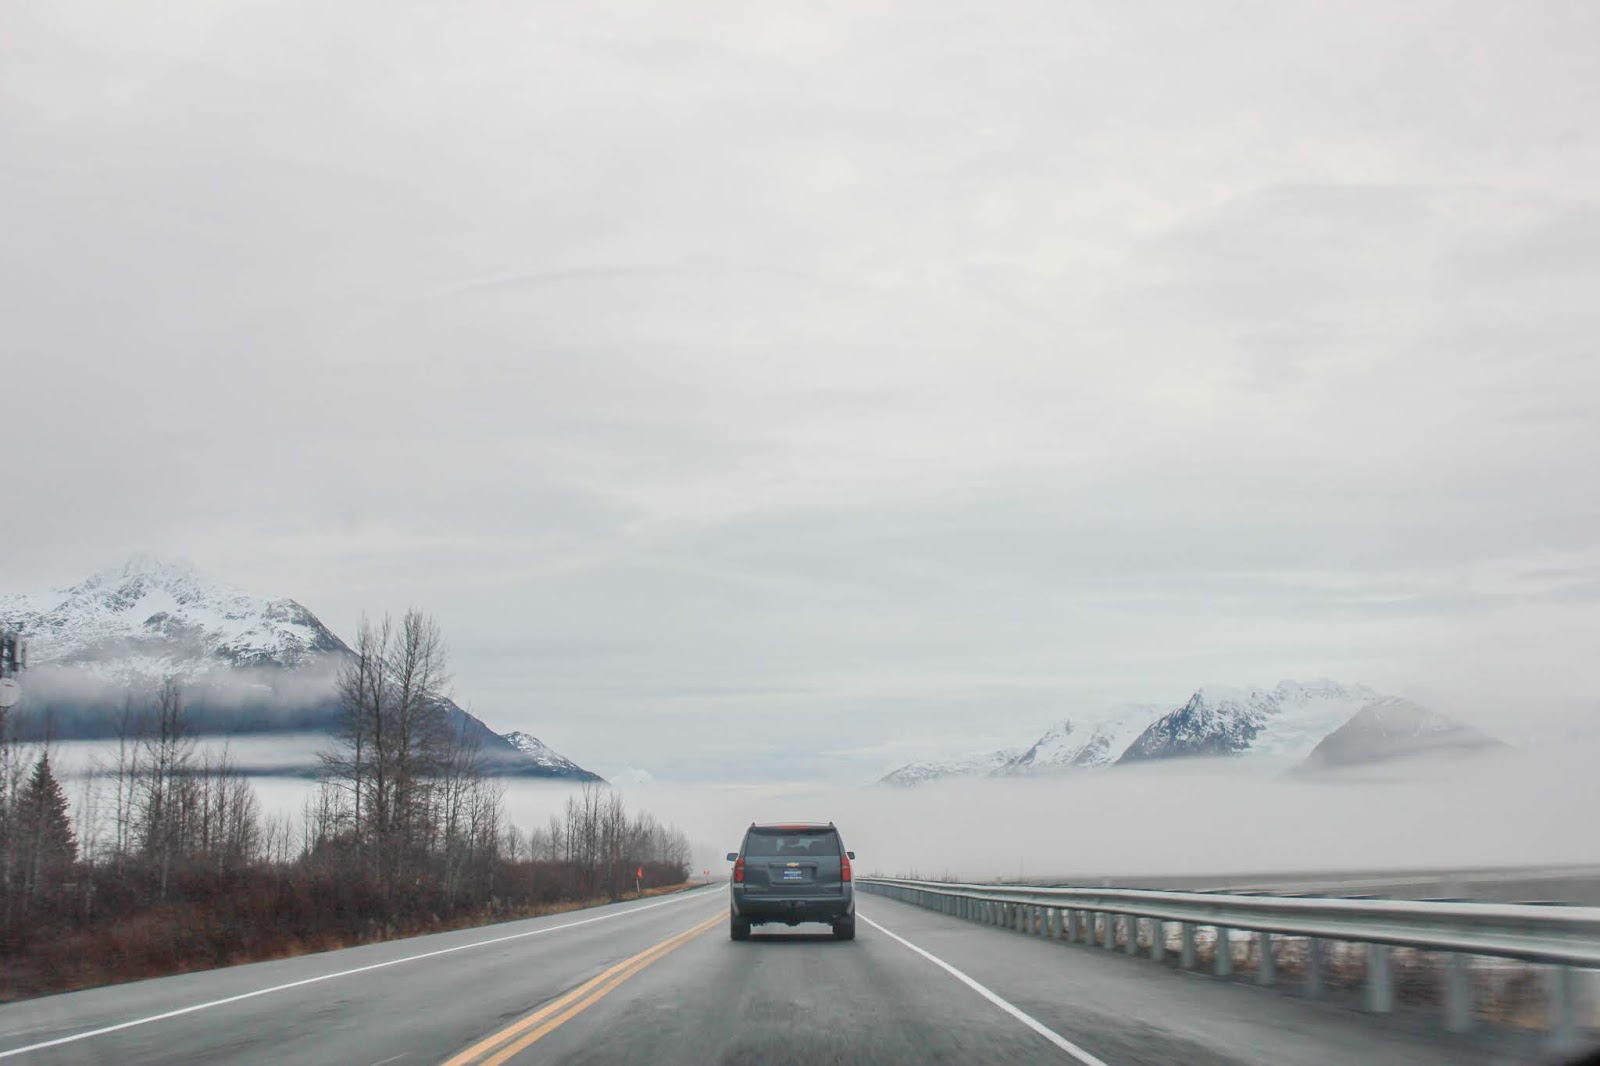 Road Trip along the Seward Highway from Anchorage to Seward, Alaska